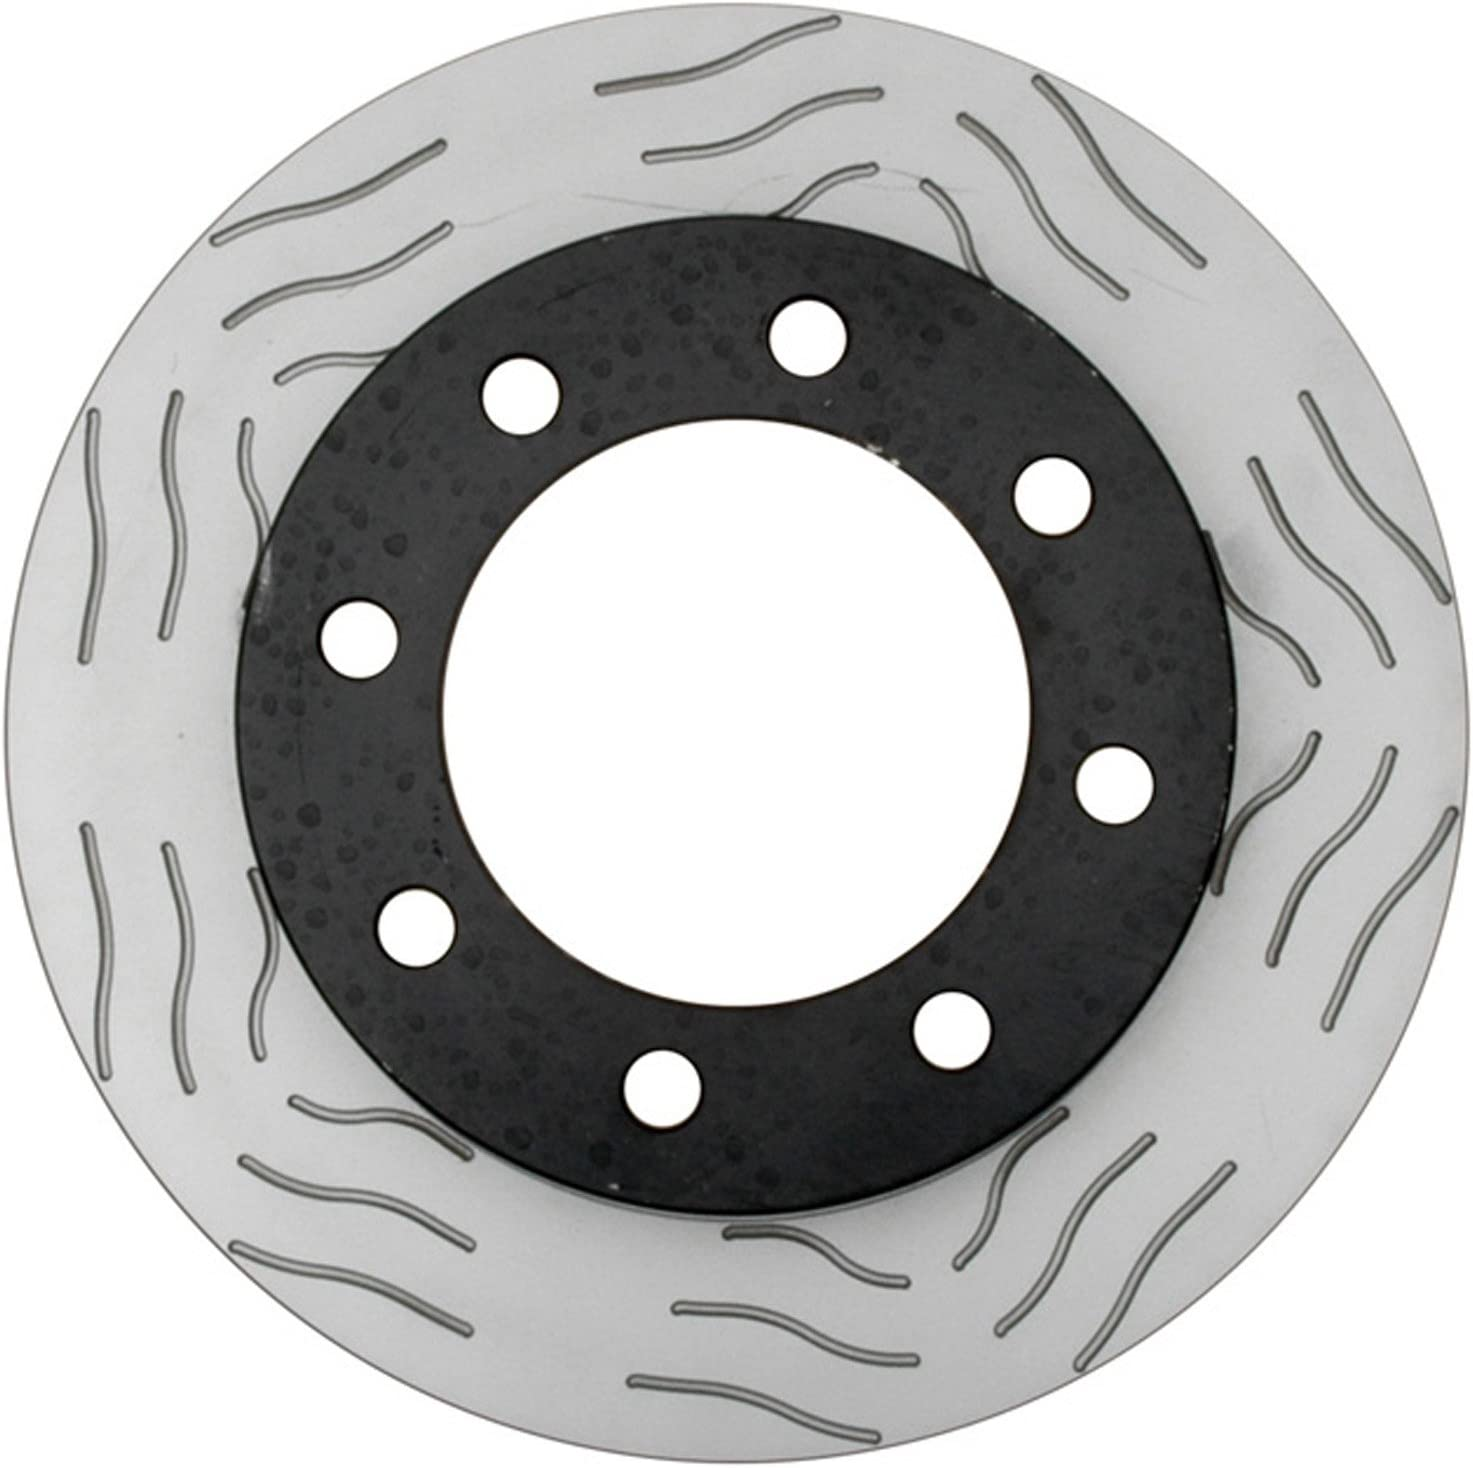 ACDelco 18A1840SD Specialty Performance Front Disc Brake Rotor Assembly for Severe Duty